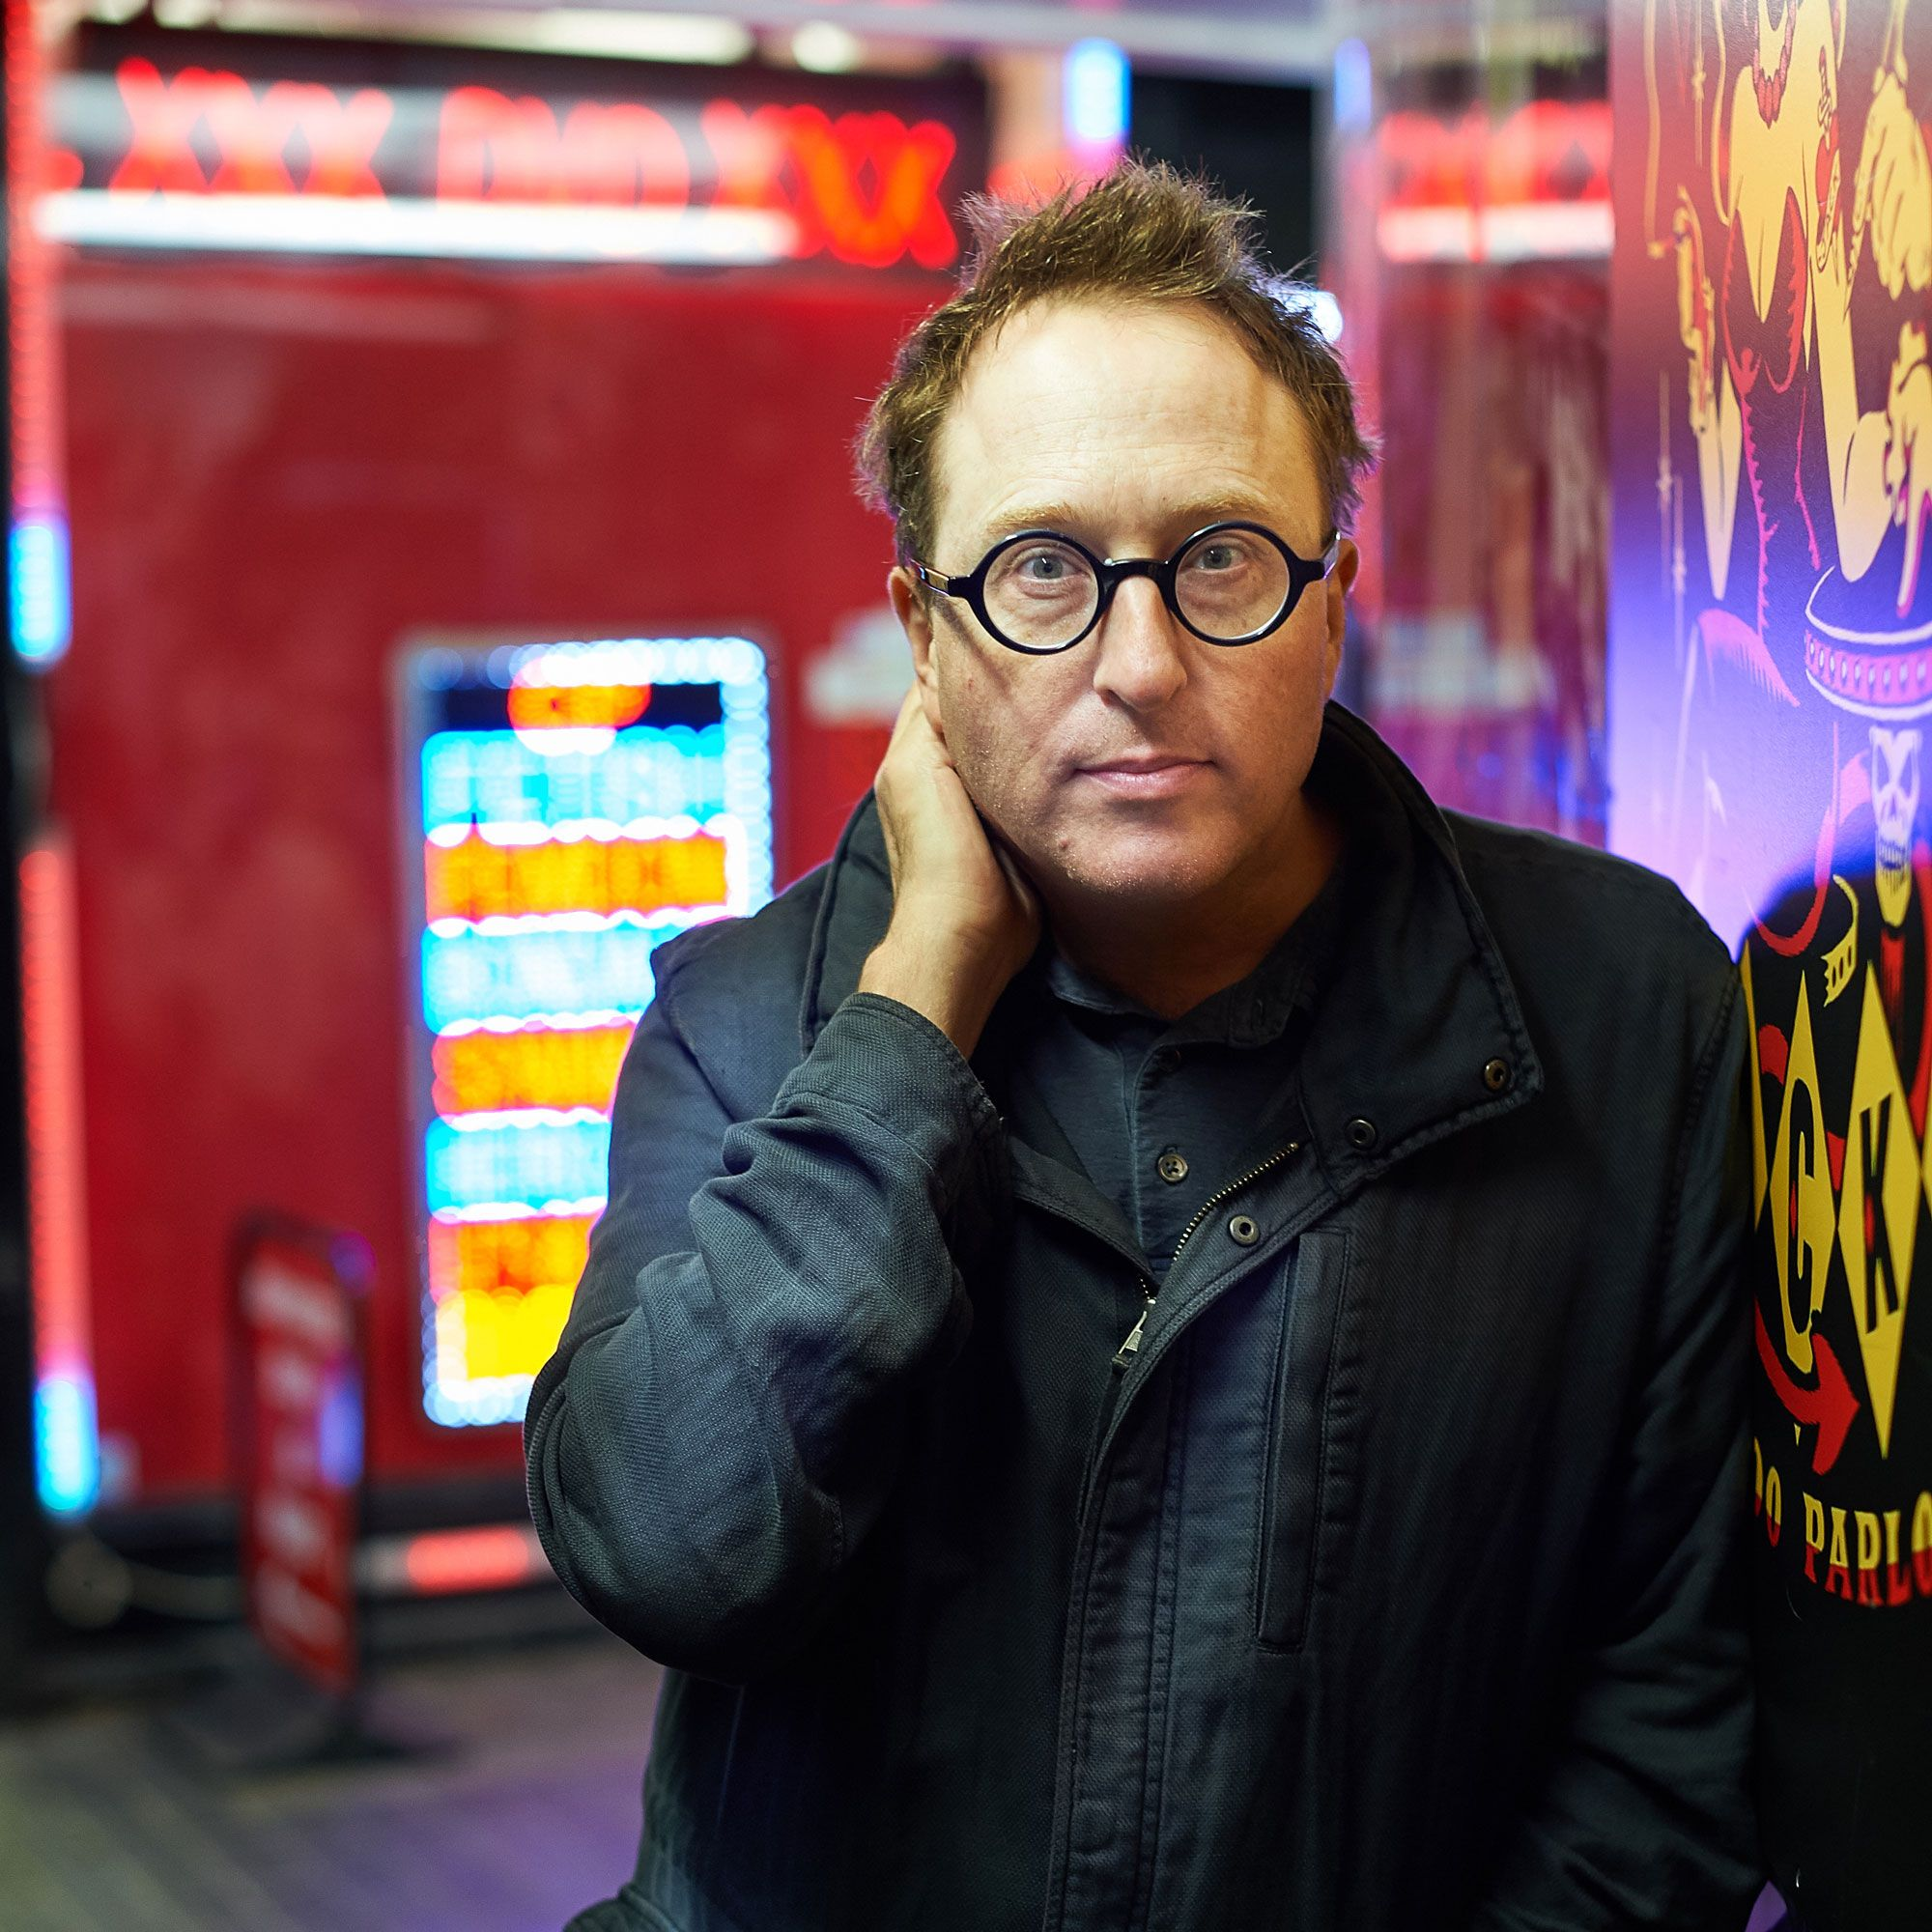 Exclusive: The Butterfly Effect's Jon Ronson shares theory on where it all went wrong for Good Morning Britain's Piers Morgan